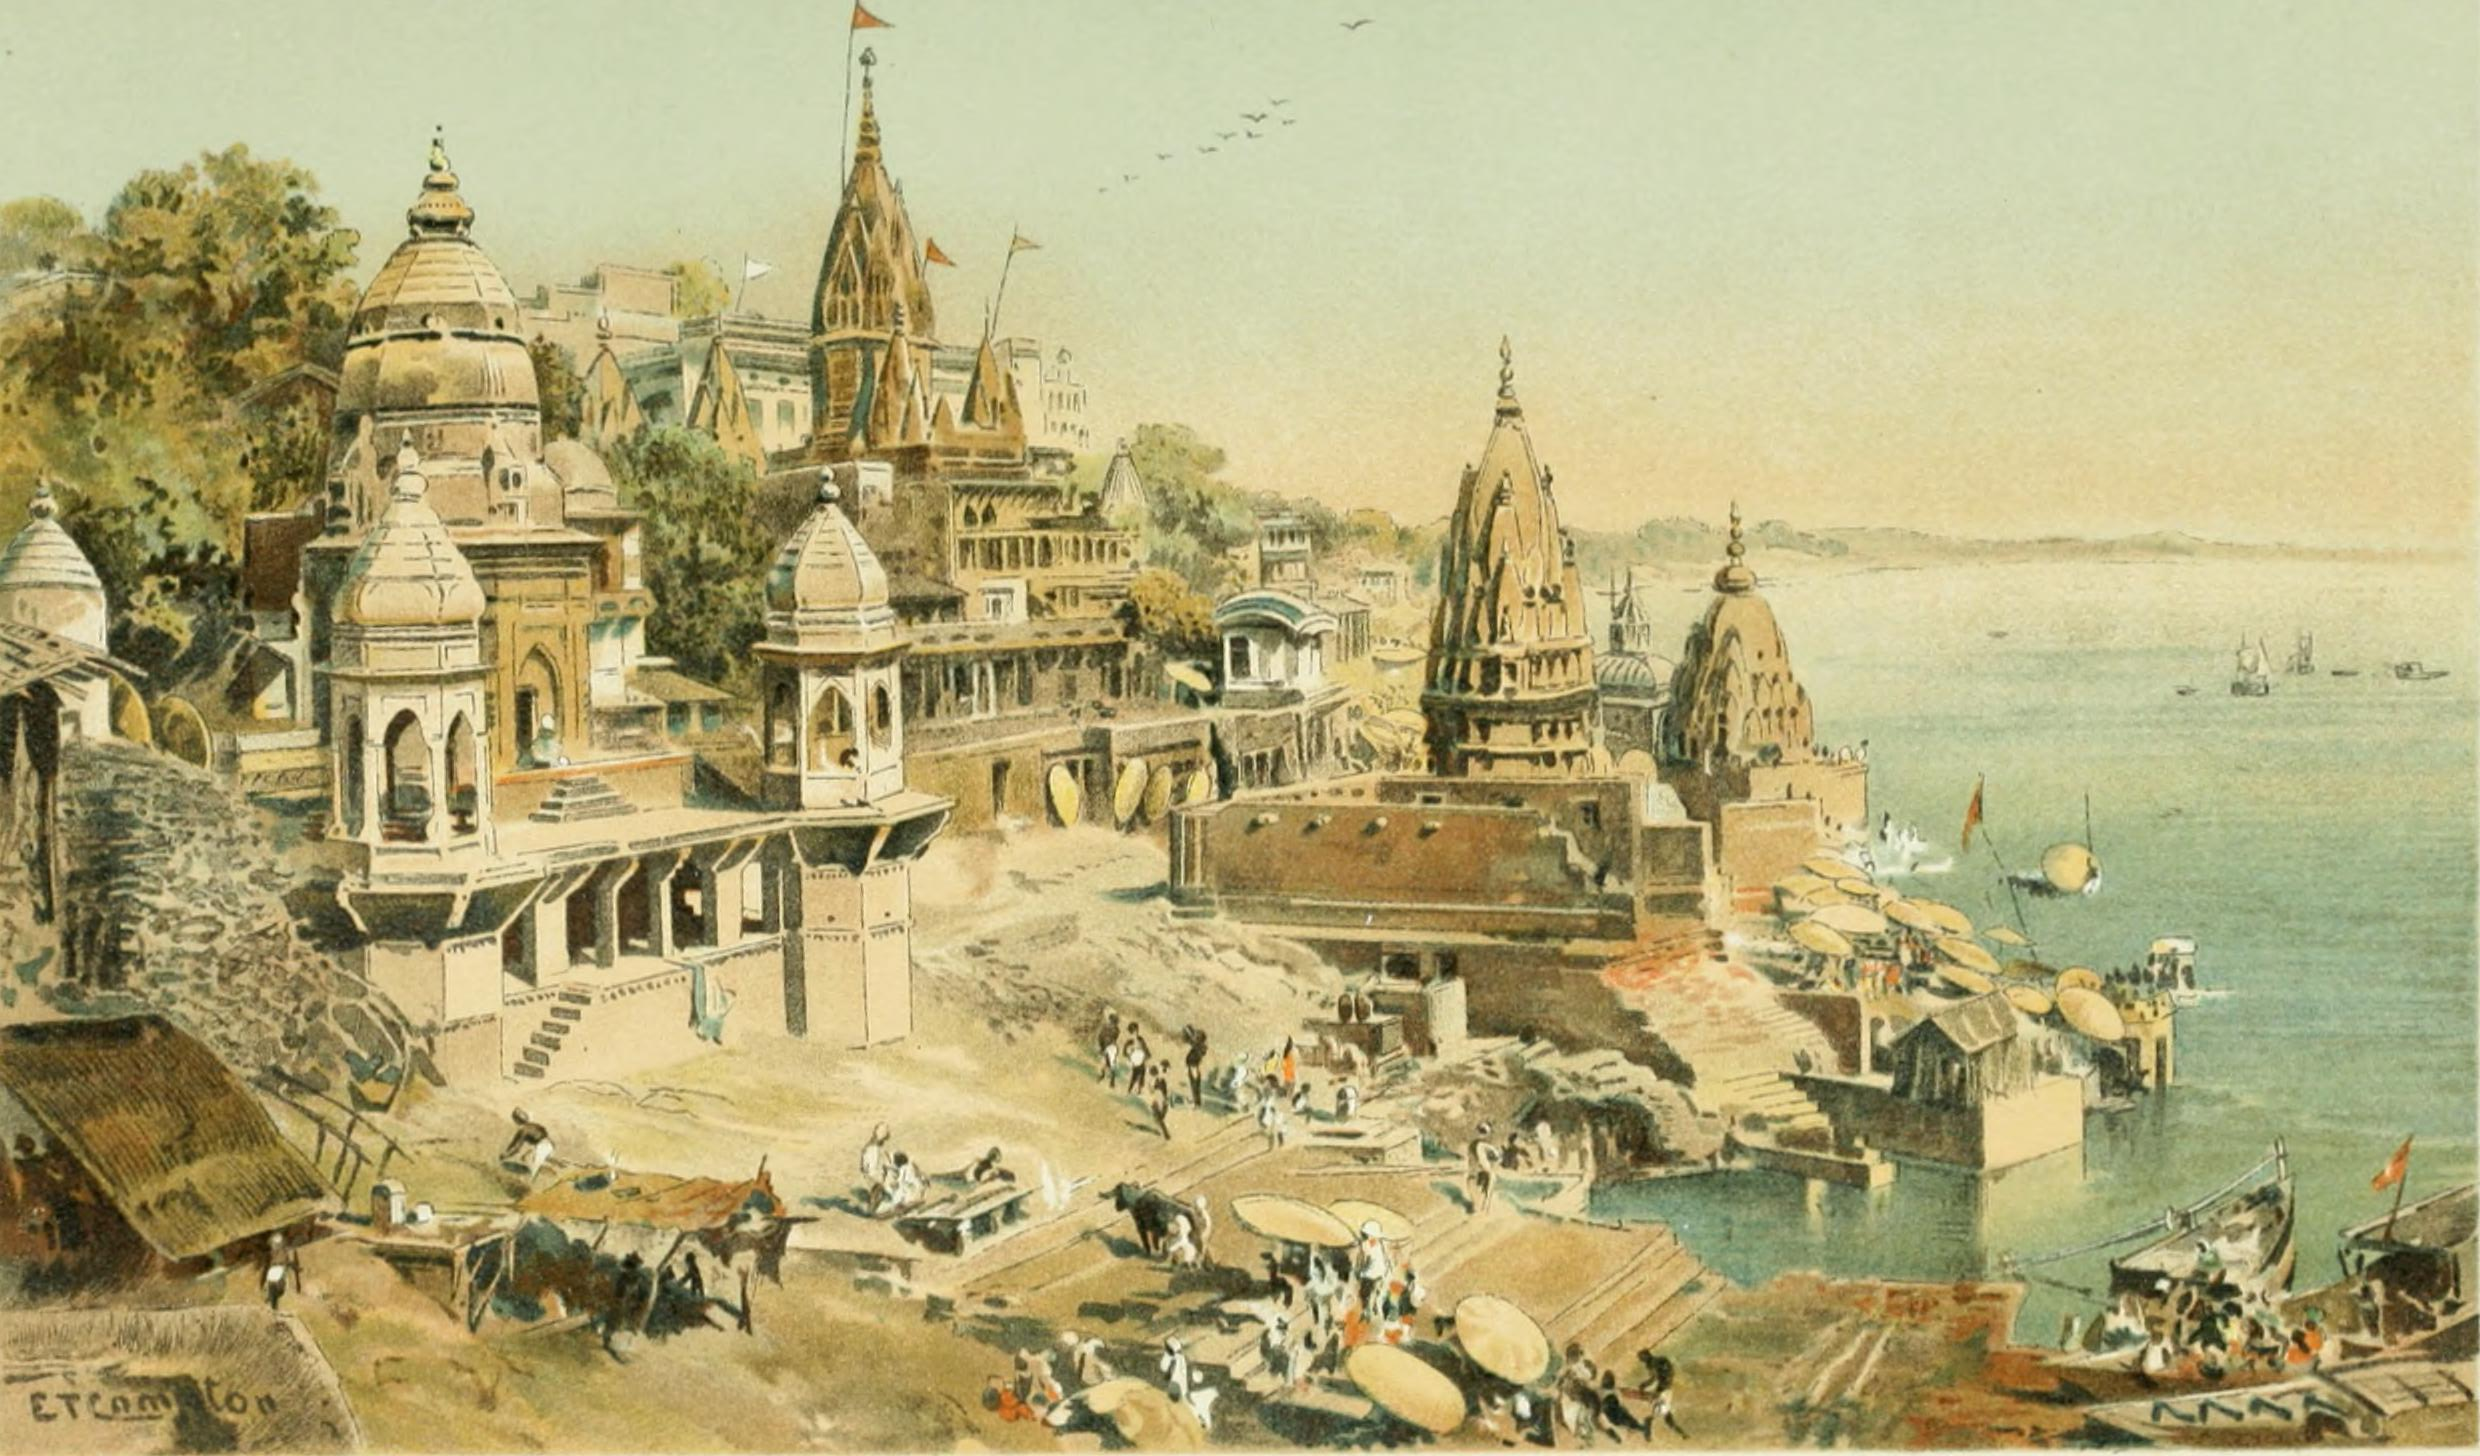 survey of world history India represents a core asian tradition as well as one of the oldest strands in the fabric of world civilization indian religions, philosophies, art, literature, and social systems have played a fundamental role in defining the human heritage, and they merit a proper discussion in a world history survey.